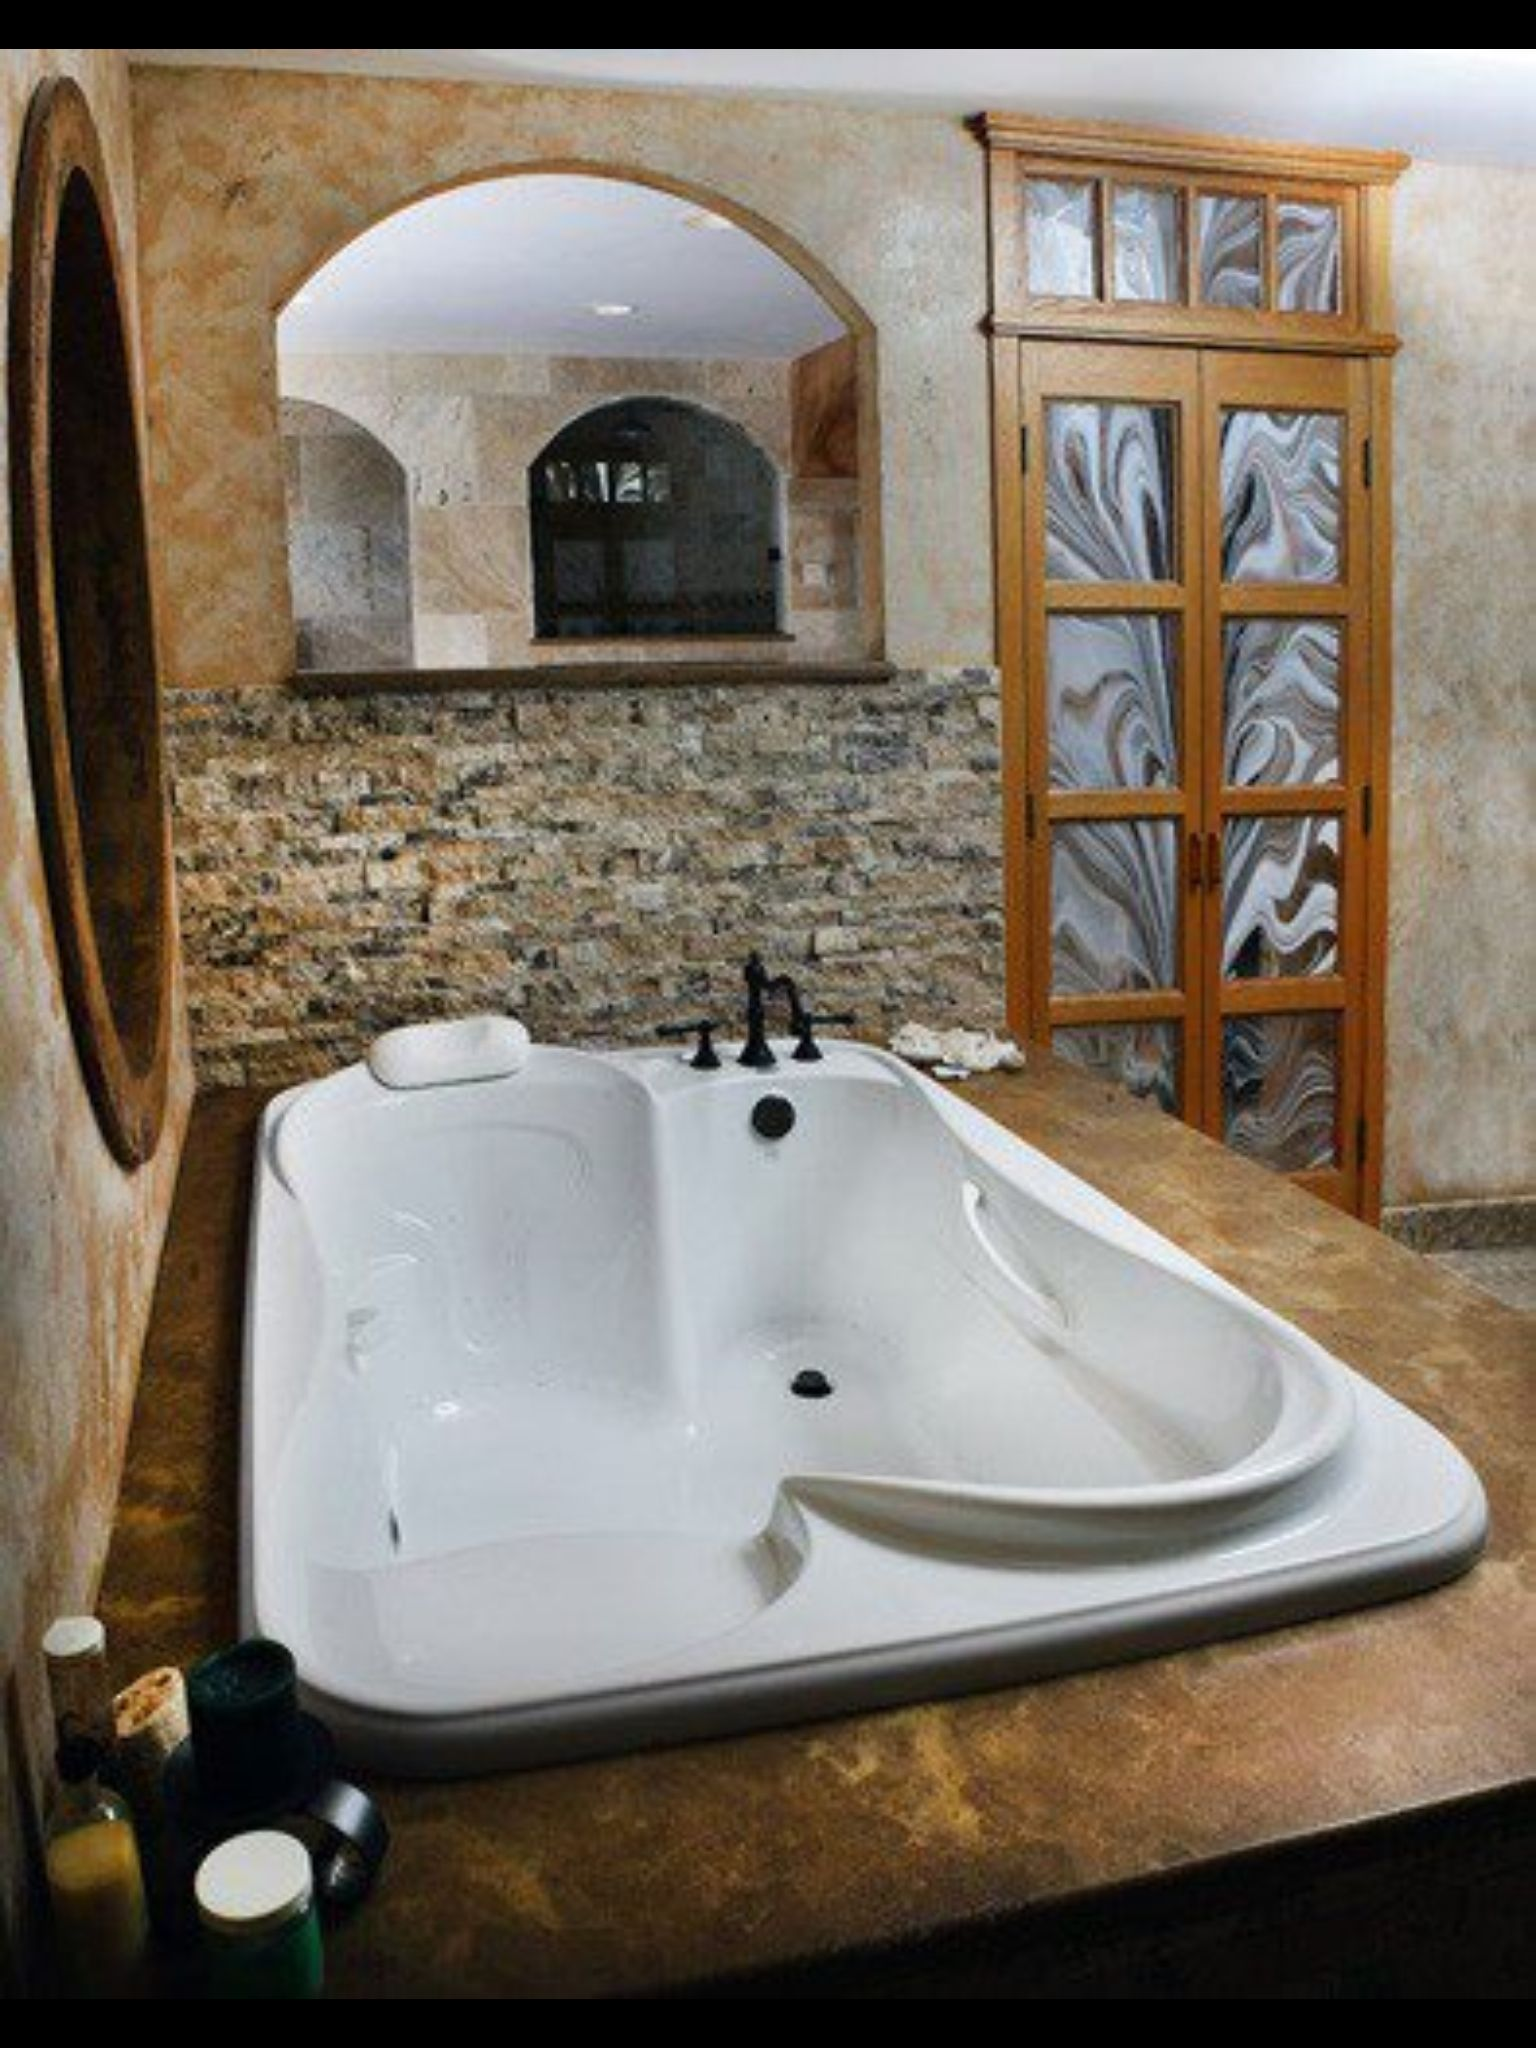 Oodles of Bubbles, Fun, and Romance: Bathtubs for Two | For the Home ...